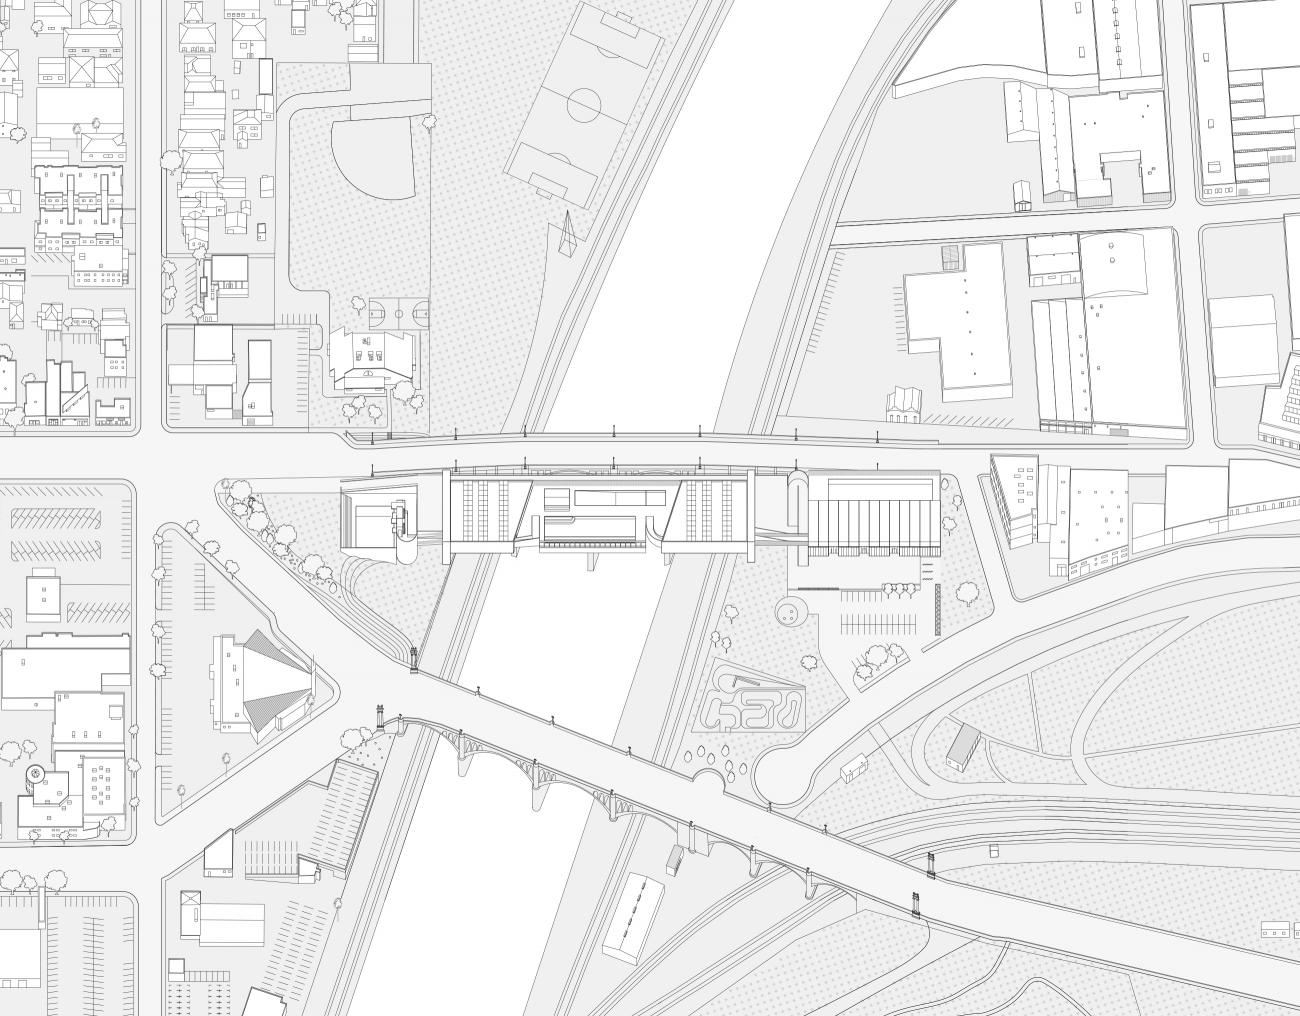 Thesis Hazinski: bridge with pools and parks image drawing